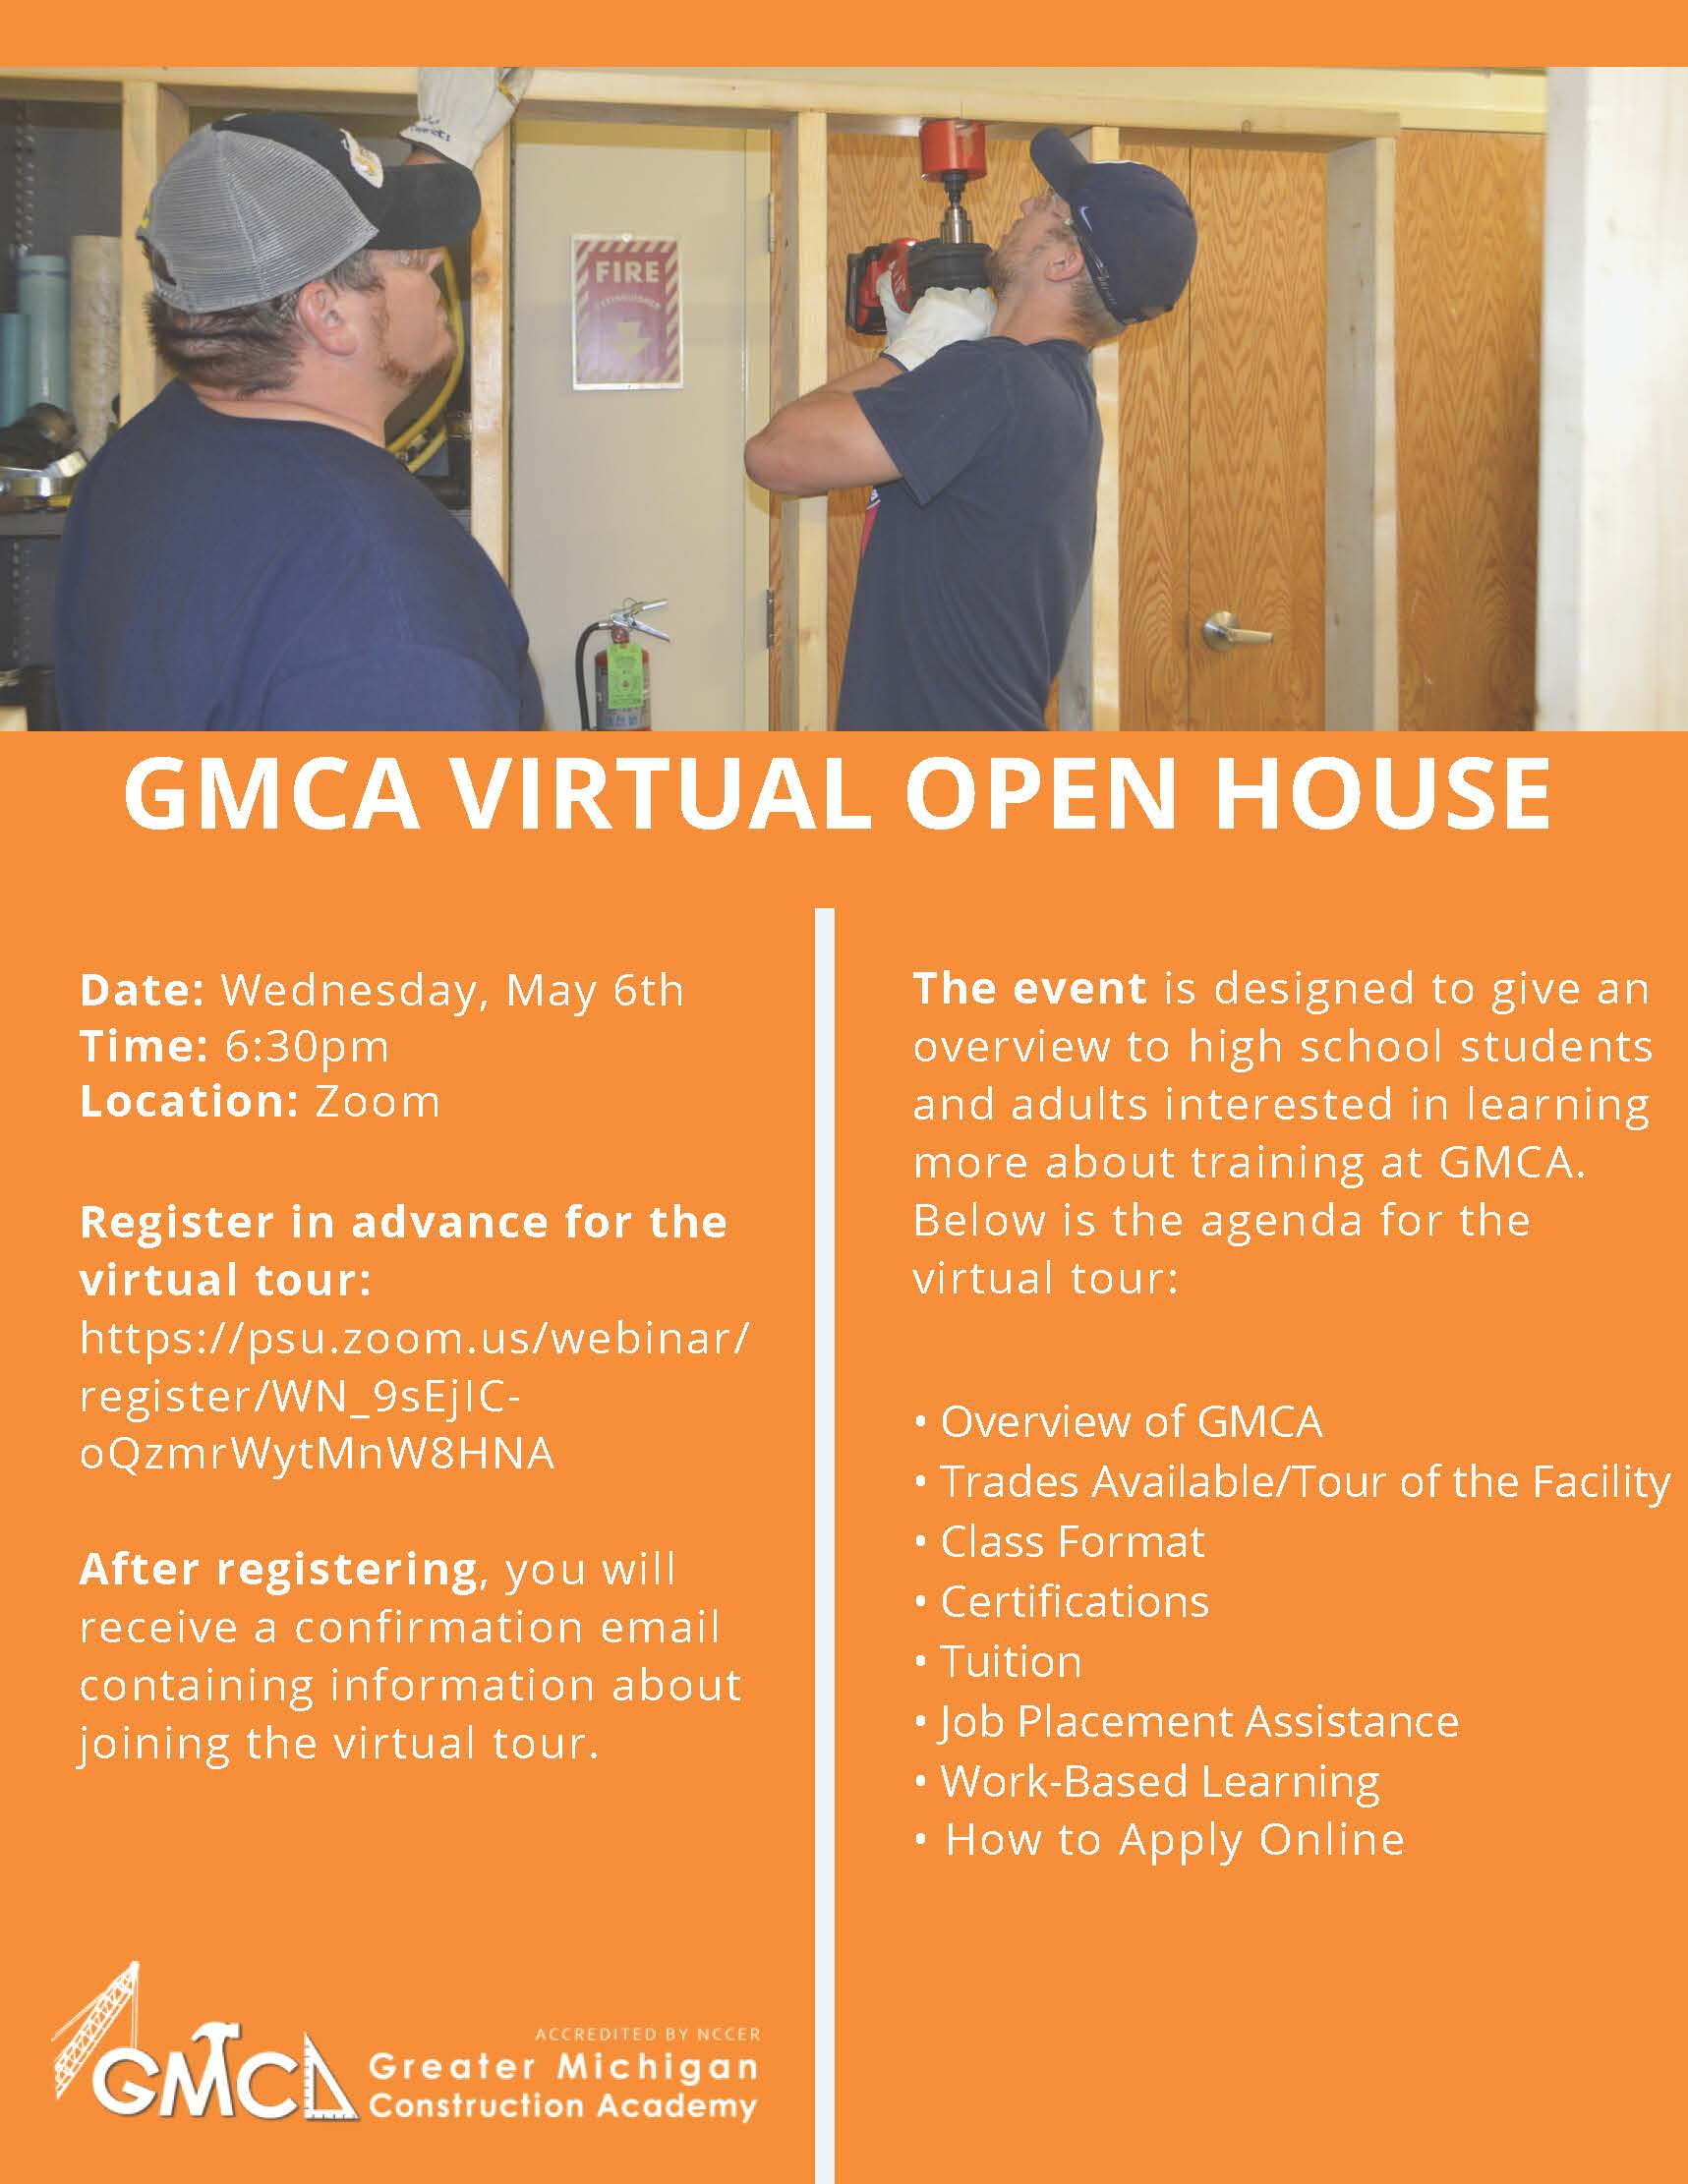 GMCA Virtual Open House Flyer